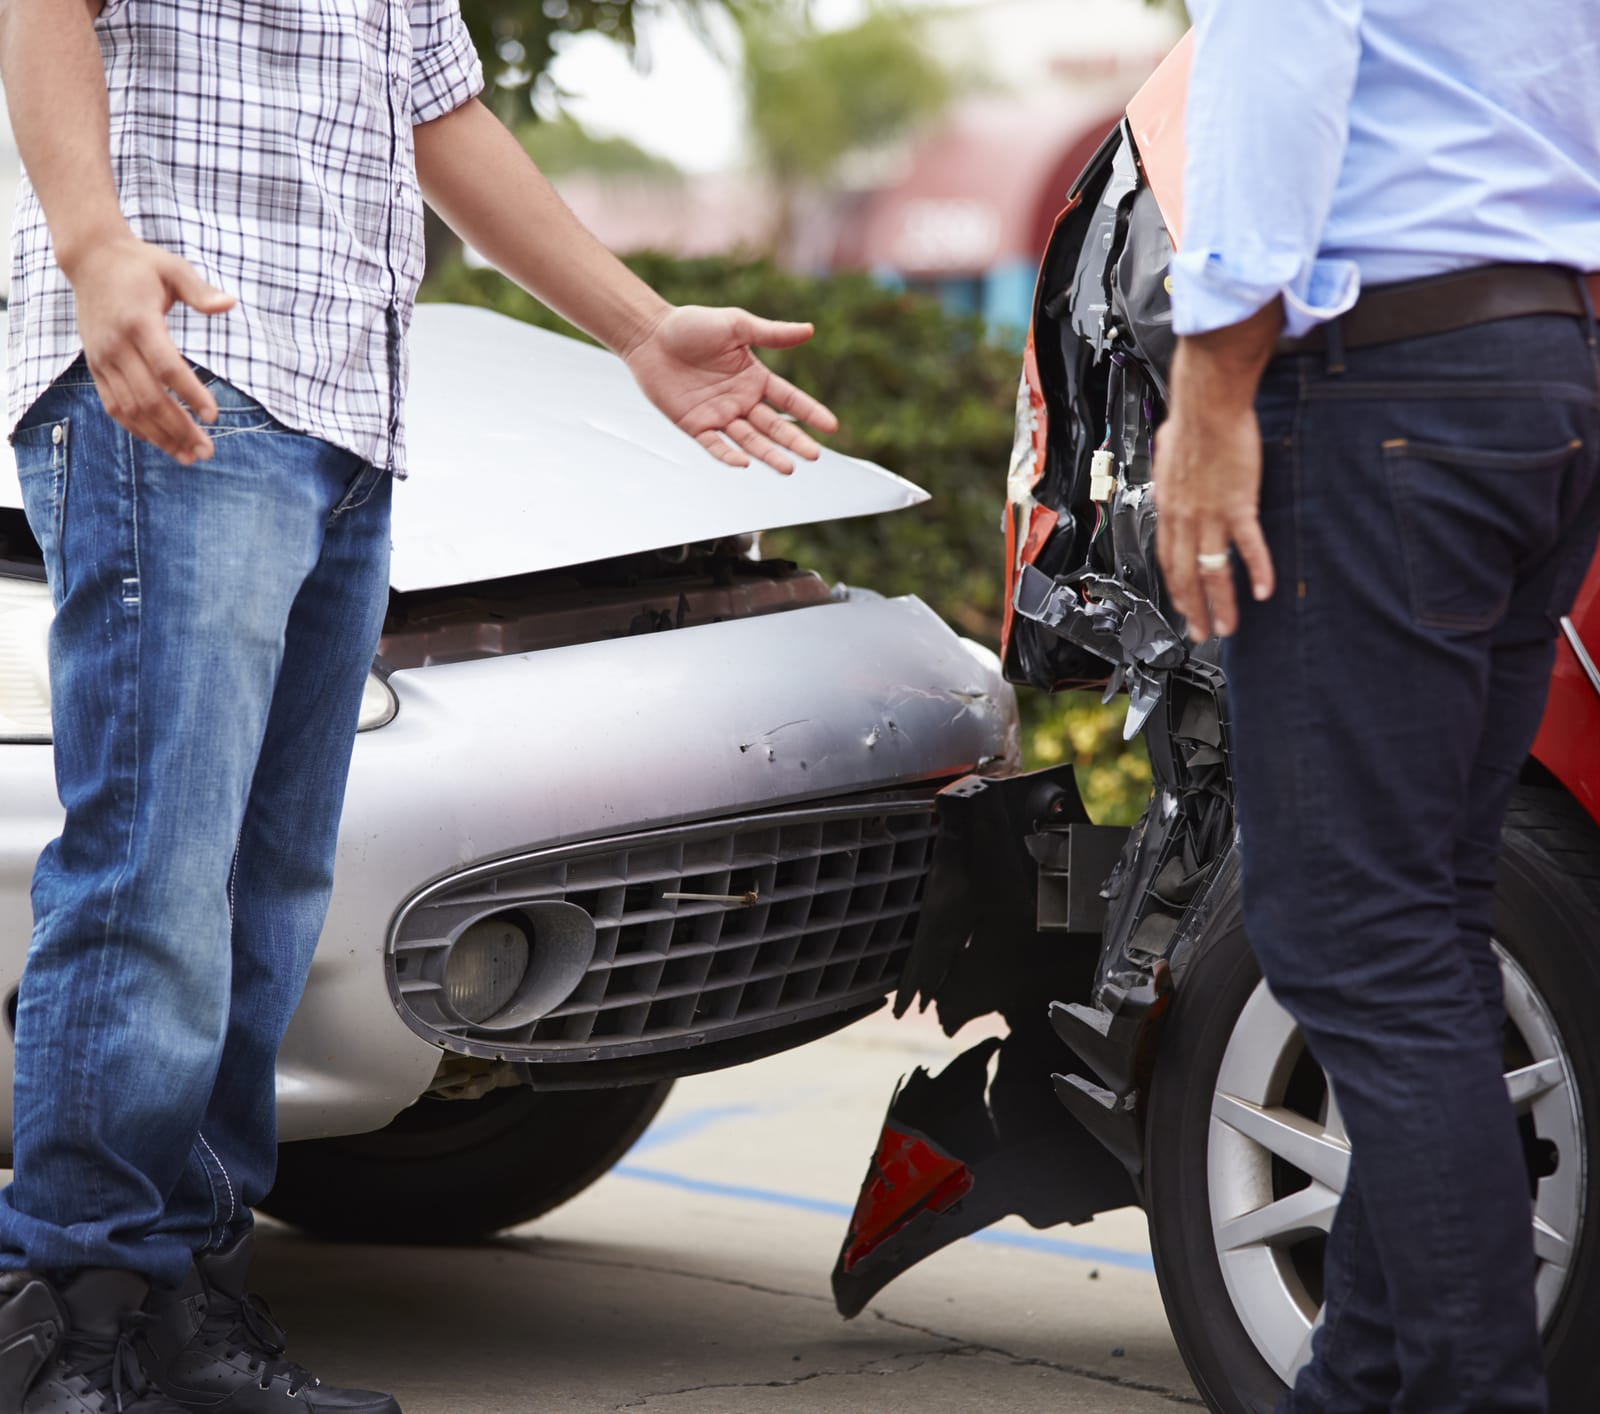 Fault or No Fault Accidents: What it Means for Your Auto Insurance